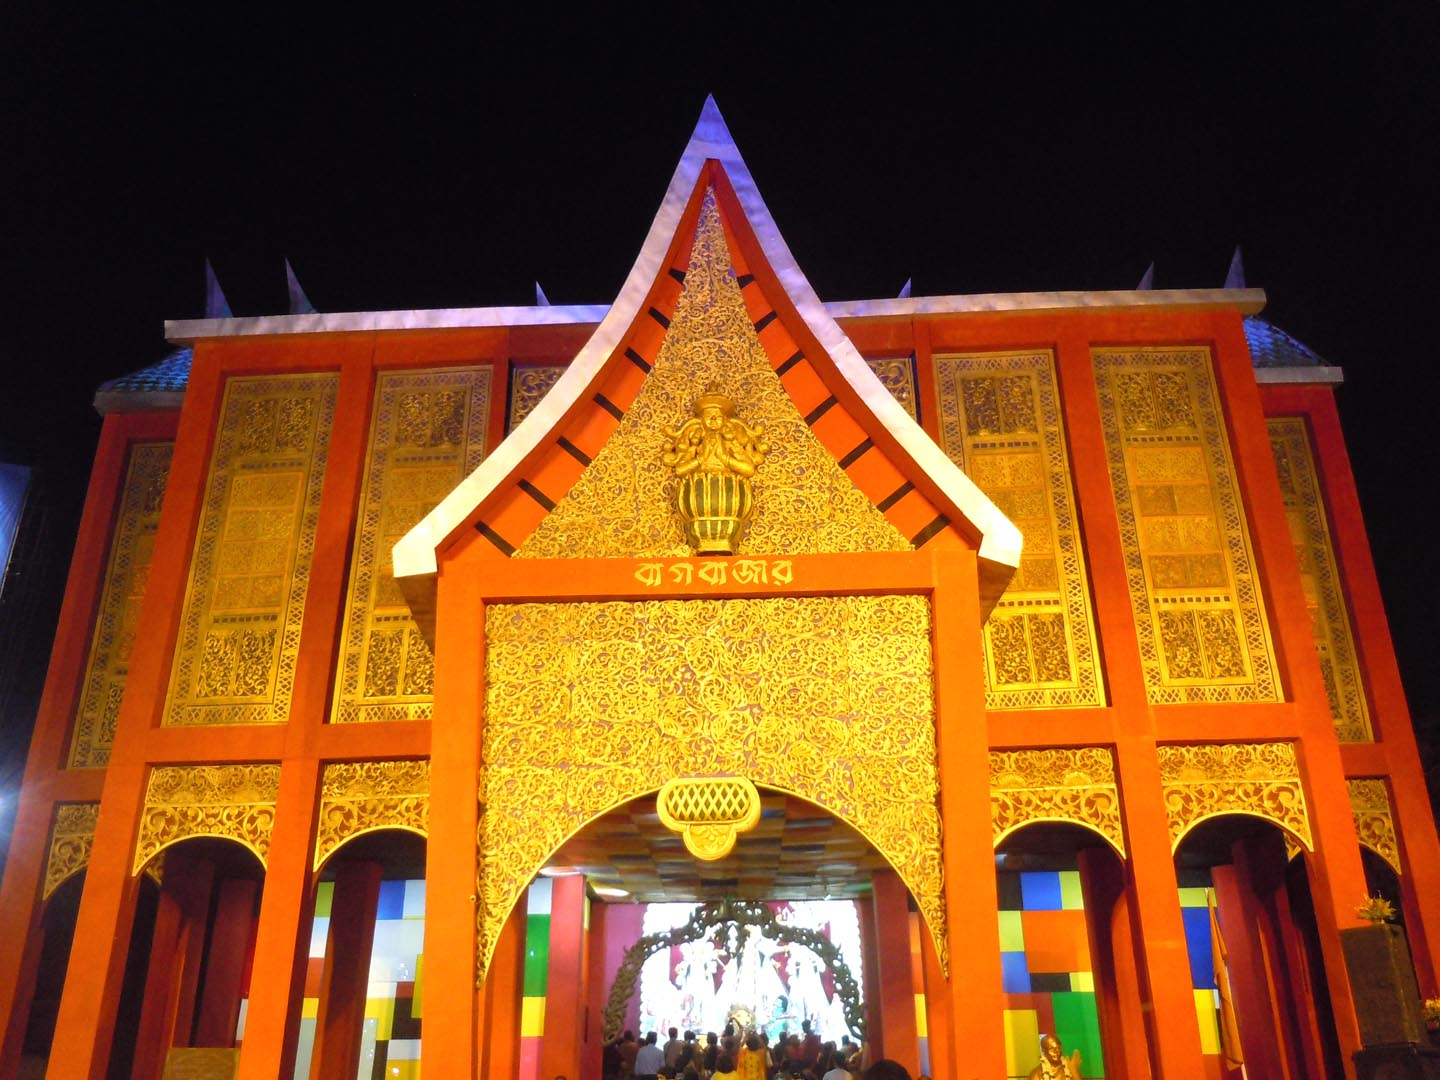 Just about everything 10012012 11012012 durga puja pandal baghbazar north kolkata altavistaventures Choice Image